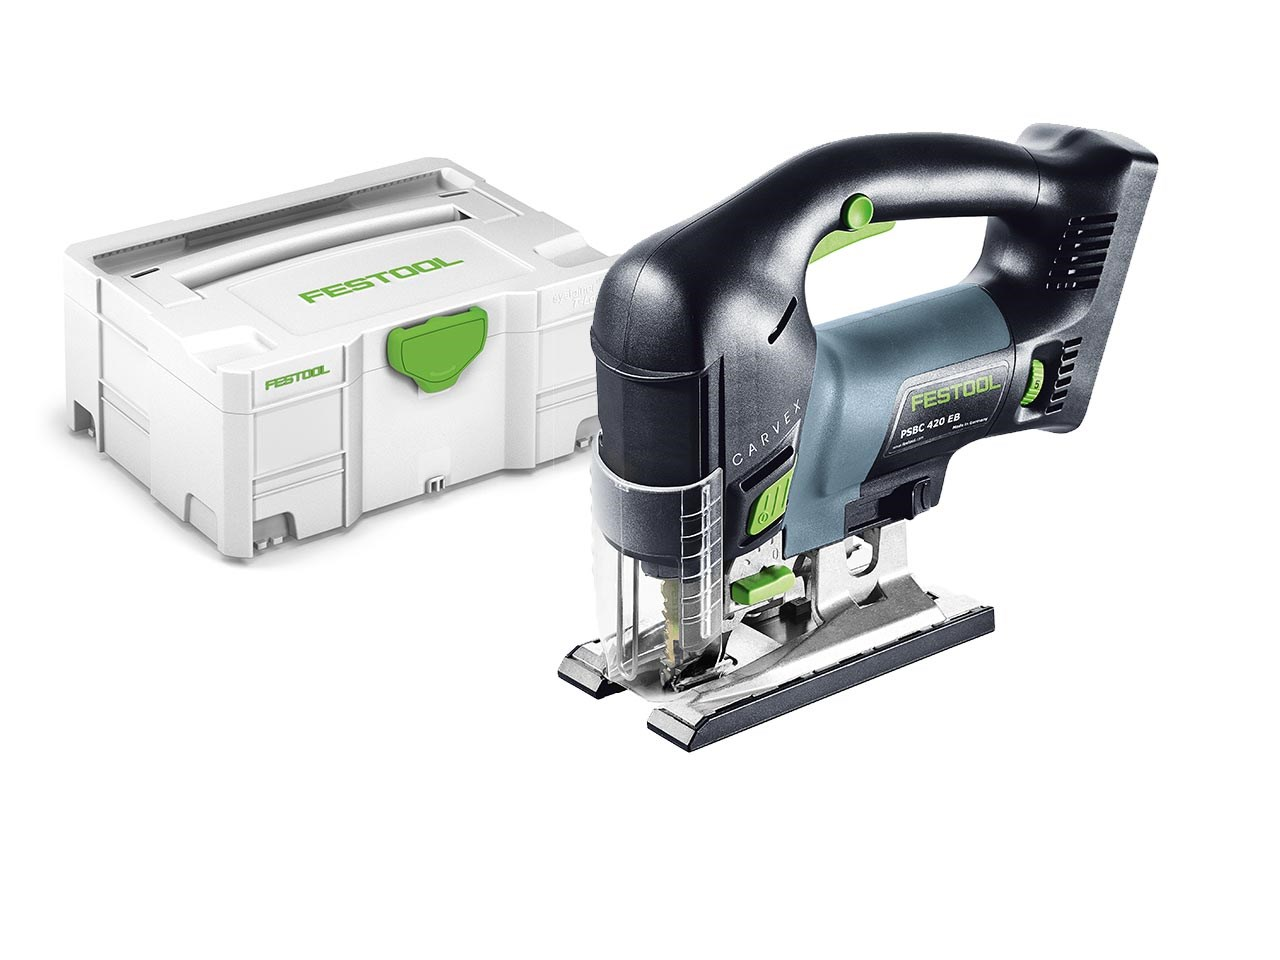 festool psbc 420 li eb basic 18v li ion pendulum jigsaw bare unit. Black Bedroom Furniture Sets. Home Design Ideas